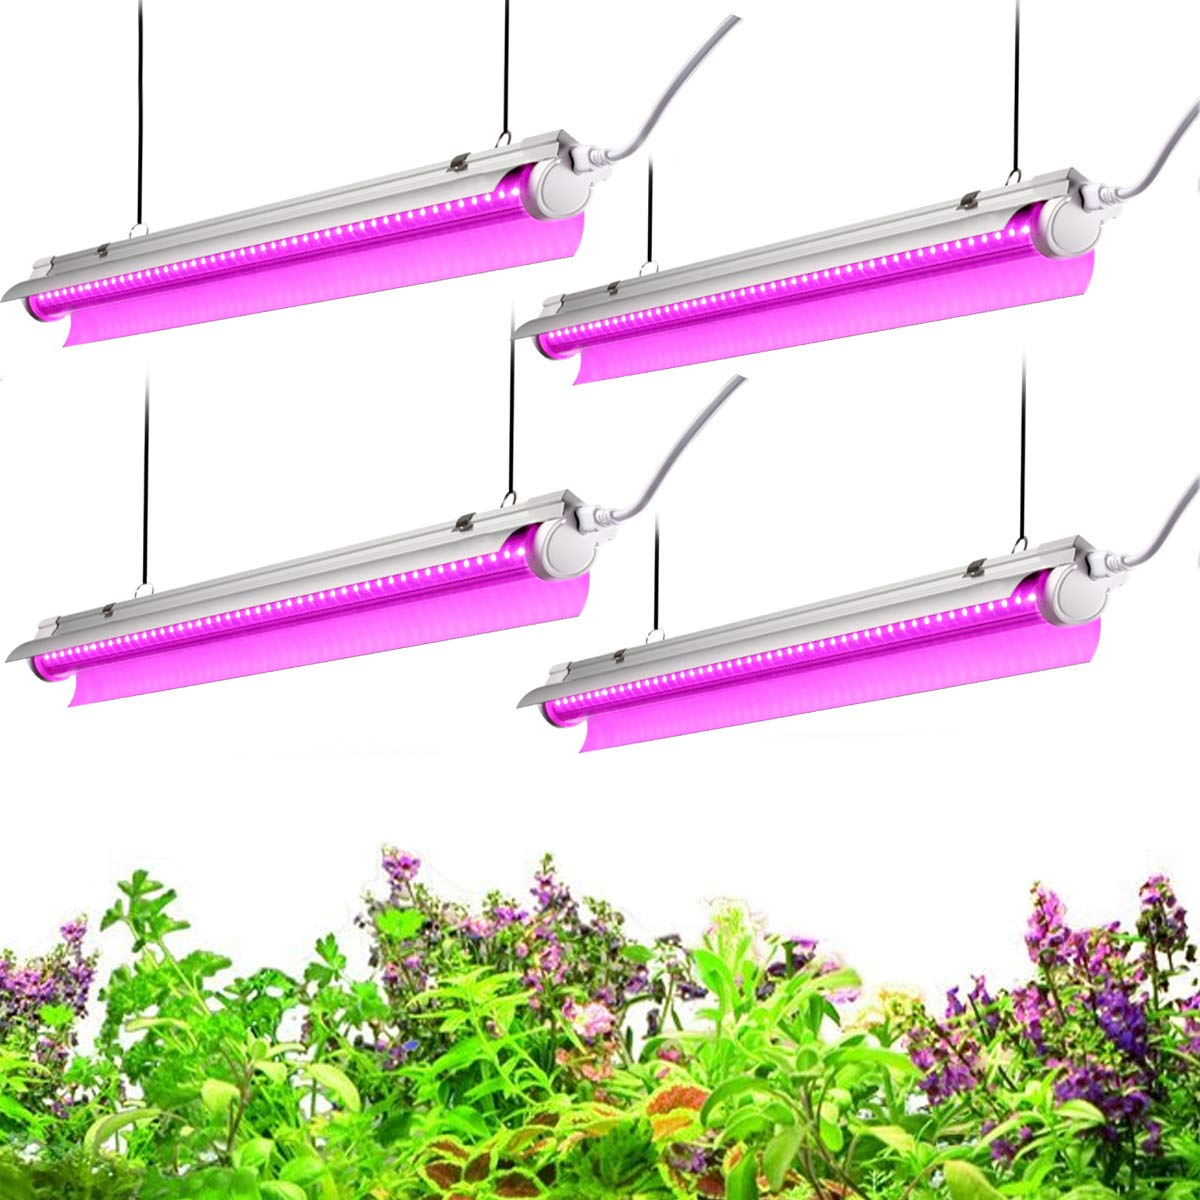 Byingo 2ft LED Grow Light, 96W (4 x 24W) 2-Row V-Shape T8 Integrated Fixture Plug and Play - with Reflector Combo Great for Indoor Plants, Pack of 4 by Byingo